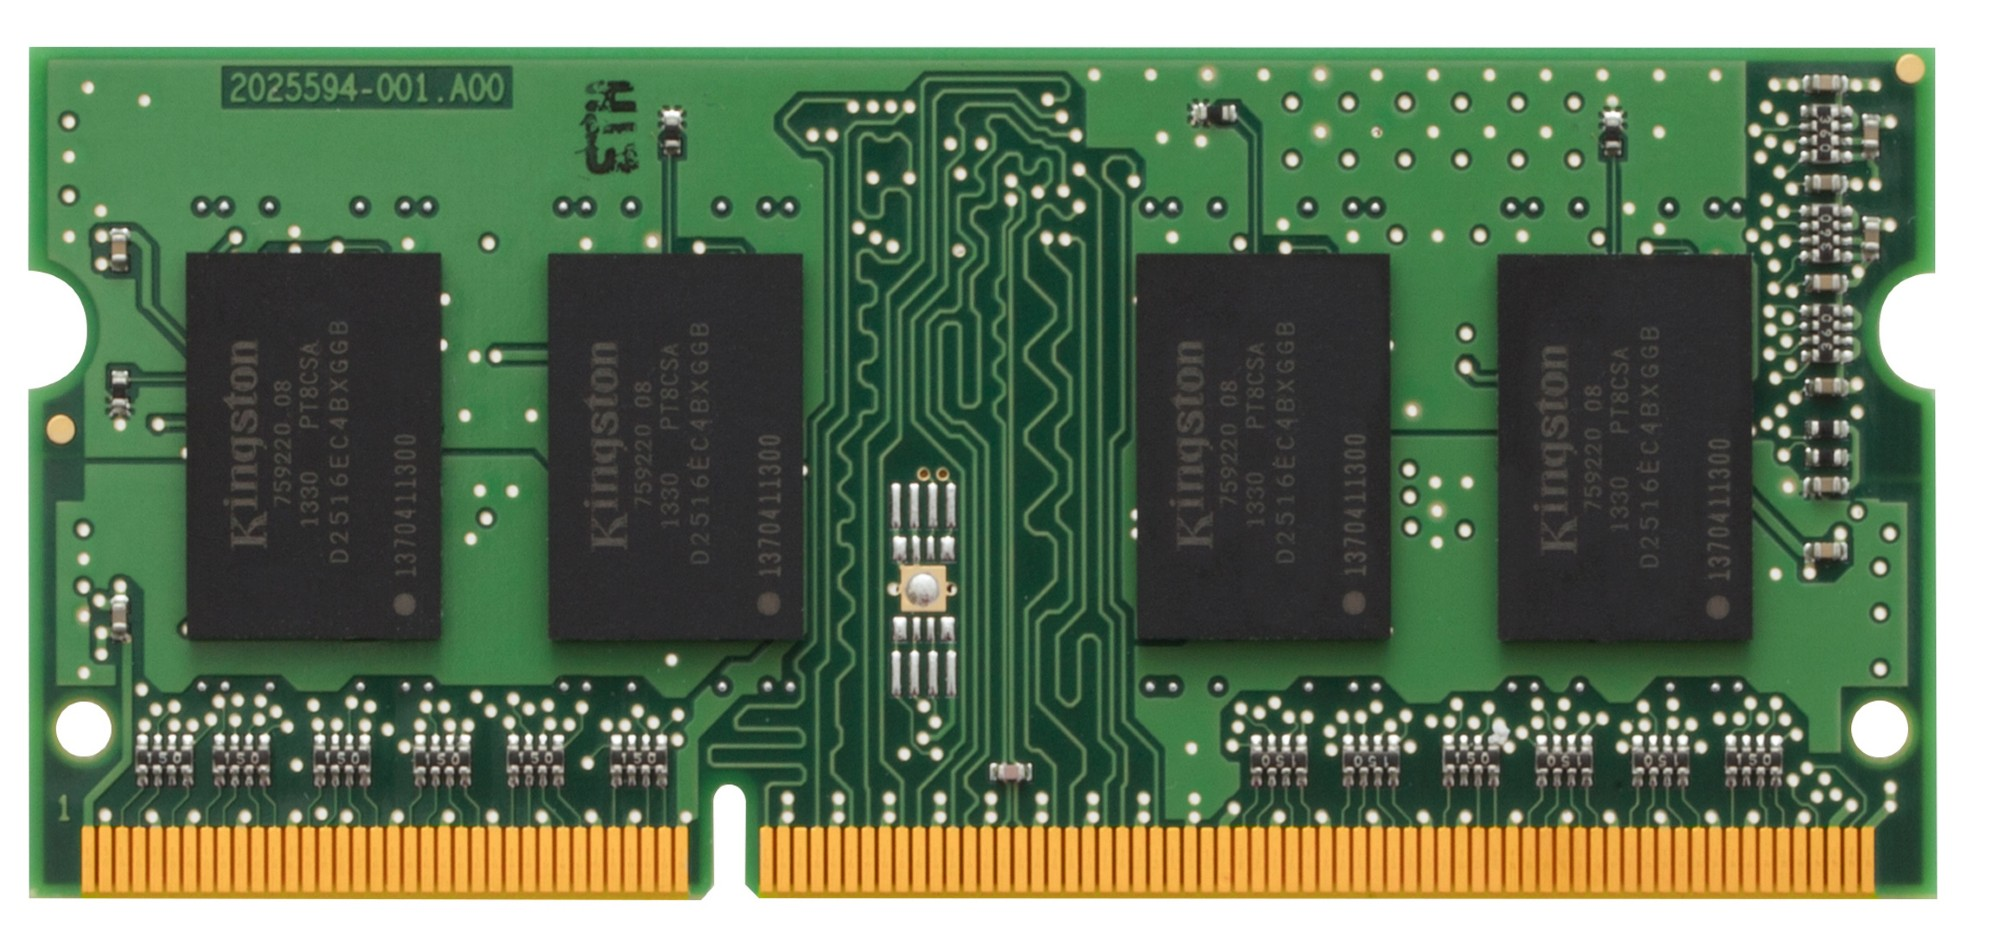 KINGSTON VALUERAM 4GB DDR3 1333MHZ MODULE MEMORY